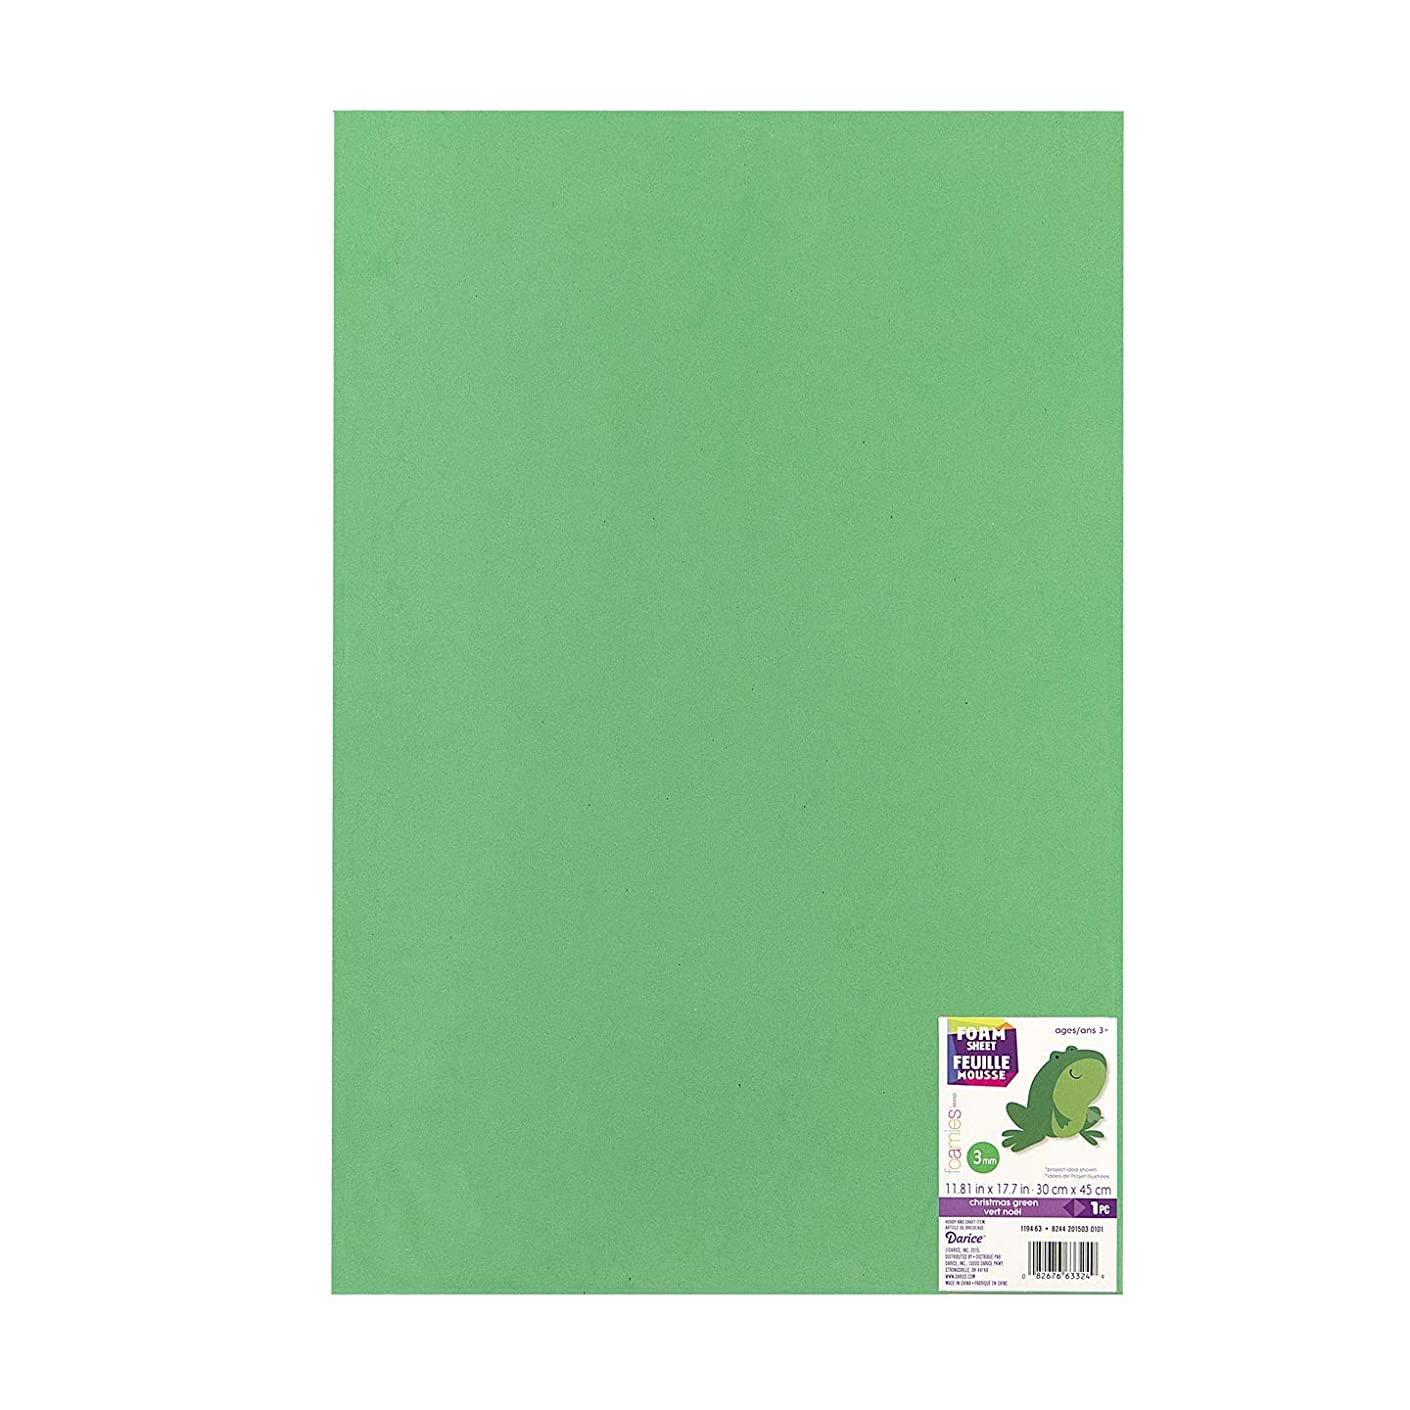 Bulk Buy: Darice Foamies Foam Sheet Christmas Green 3mm thick 12 x 18 inches (10-Pack) 1194-63